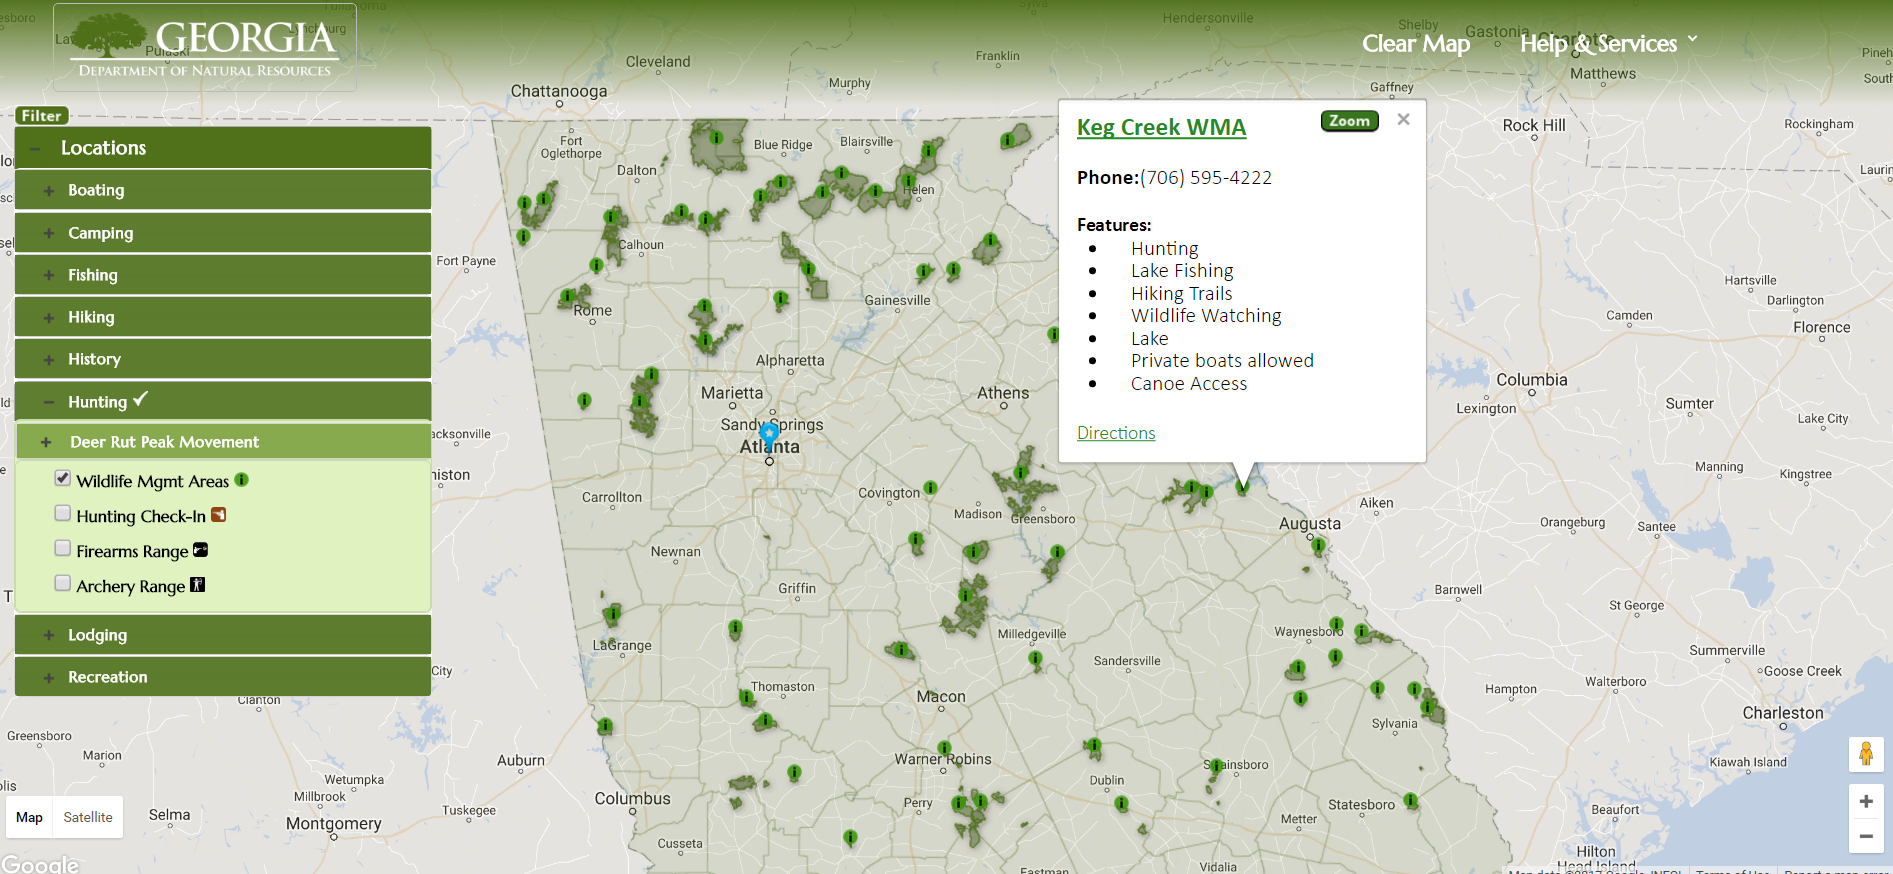 Interactive Map Of Georgia.State Interactive Maps Apt Outdoorsapt Outdoors Be An Apt In The